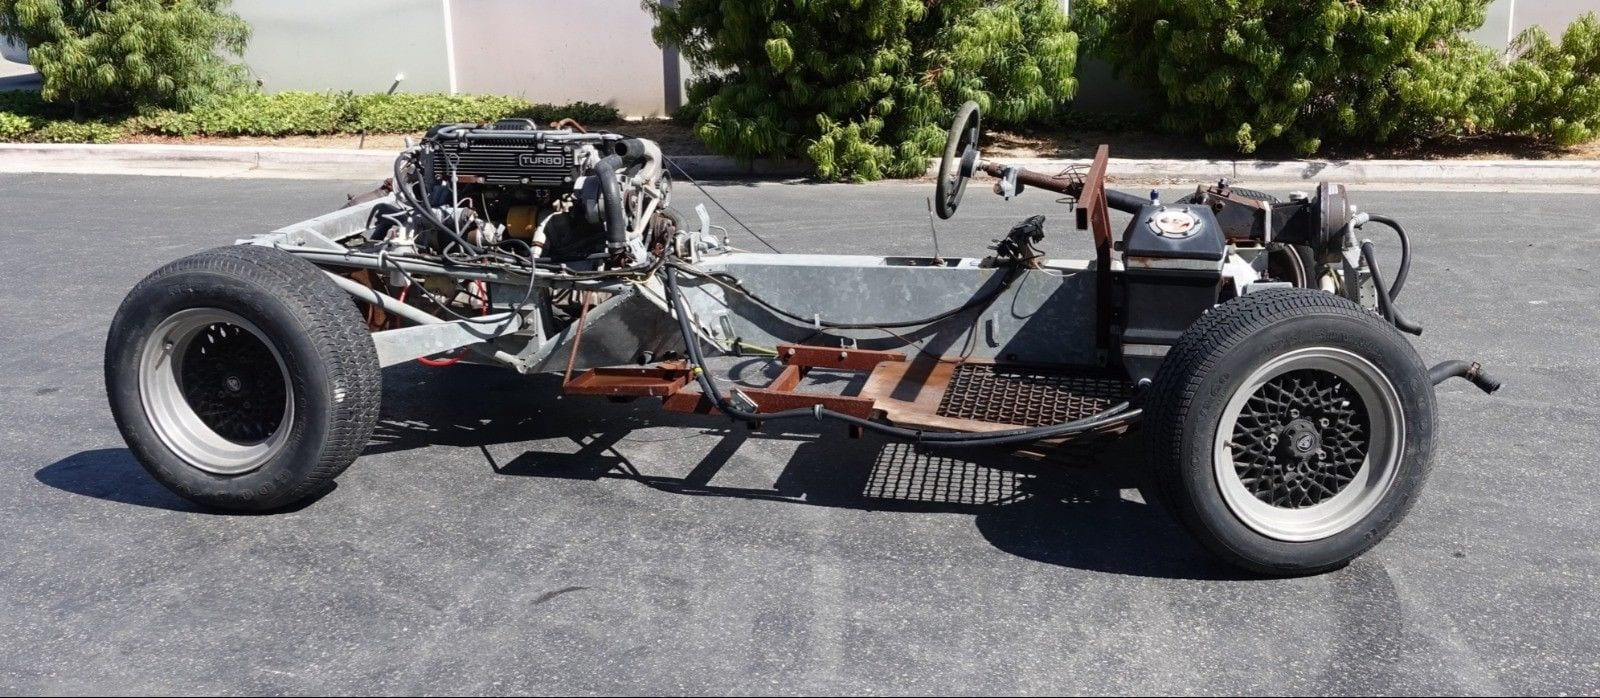 Lotus Esprit rolling chassis for sale